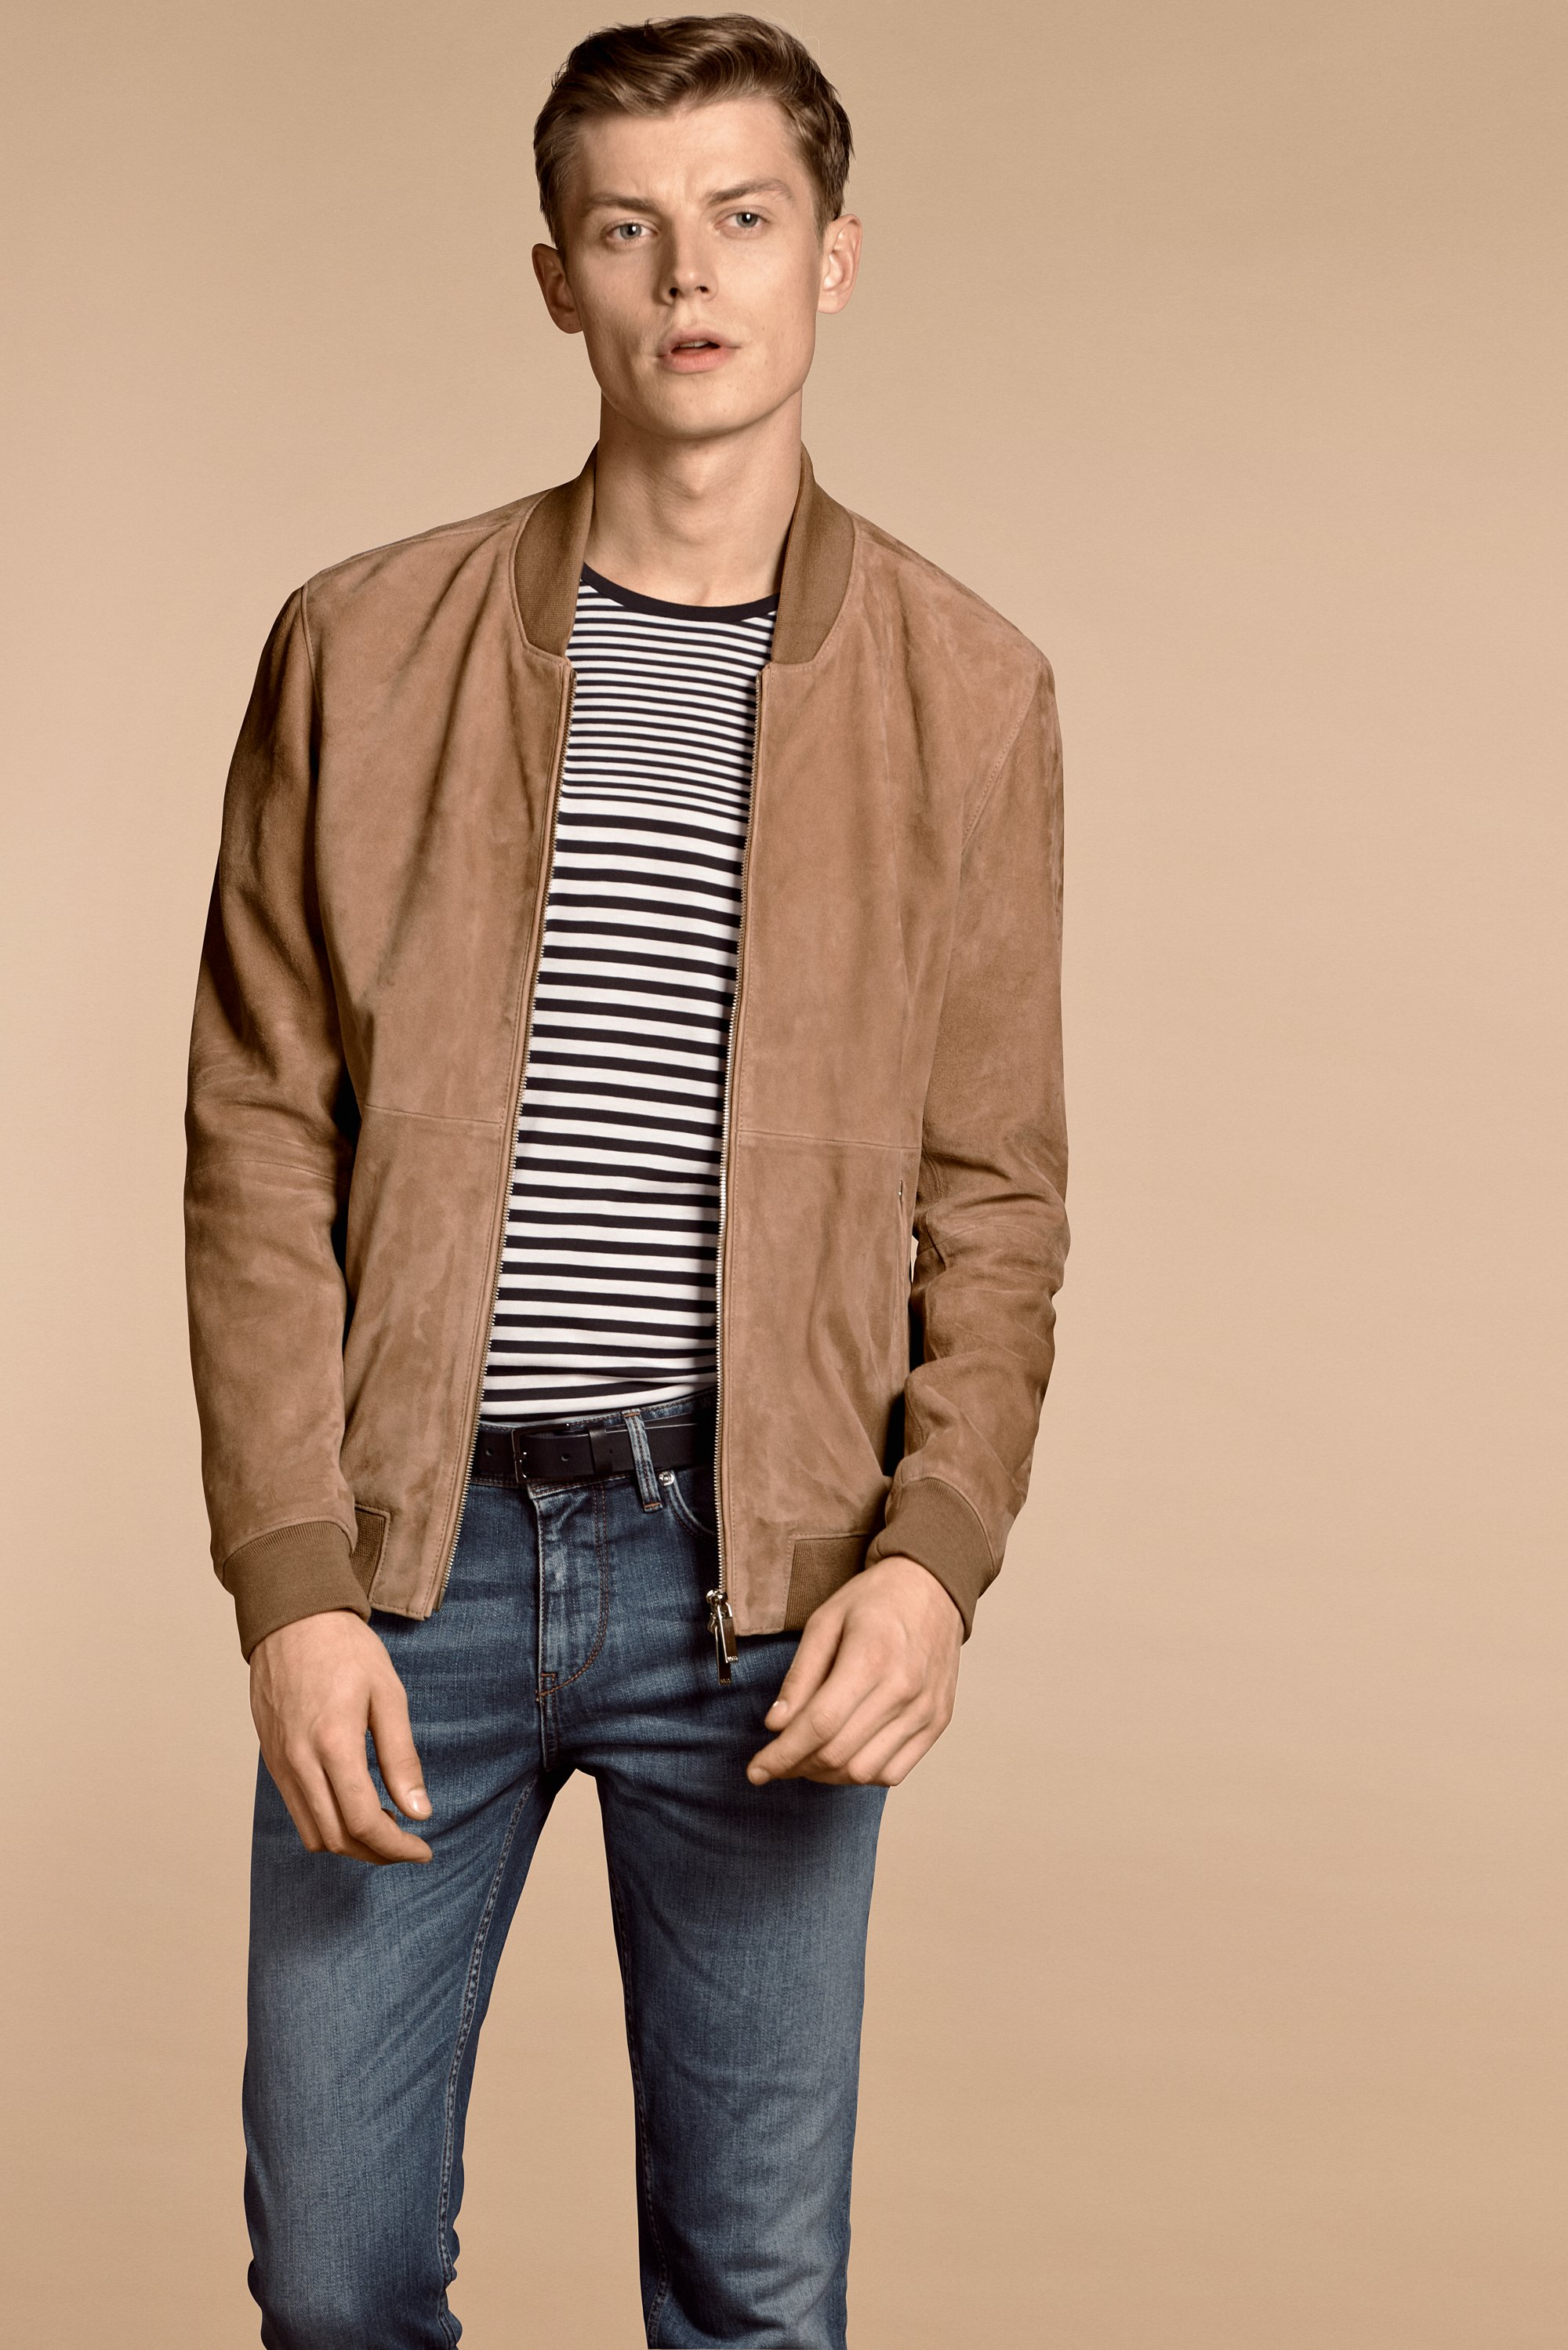 Striped shirt, brown jacket and blue jeans by BOSS Menswear